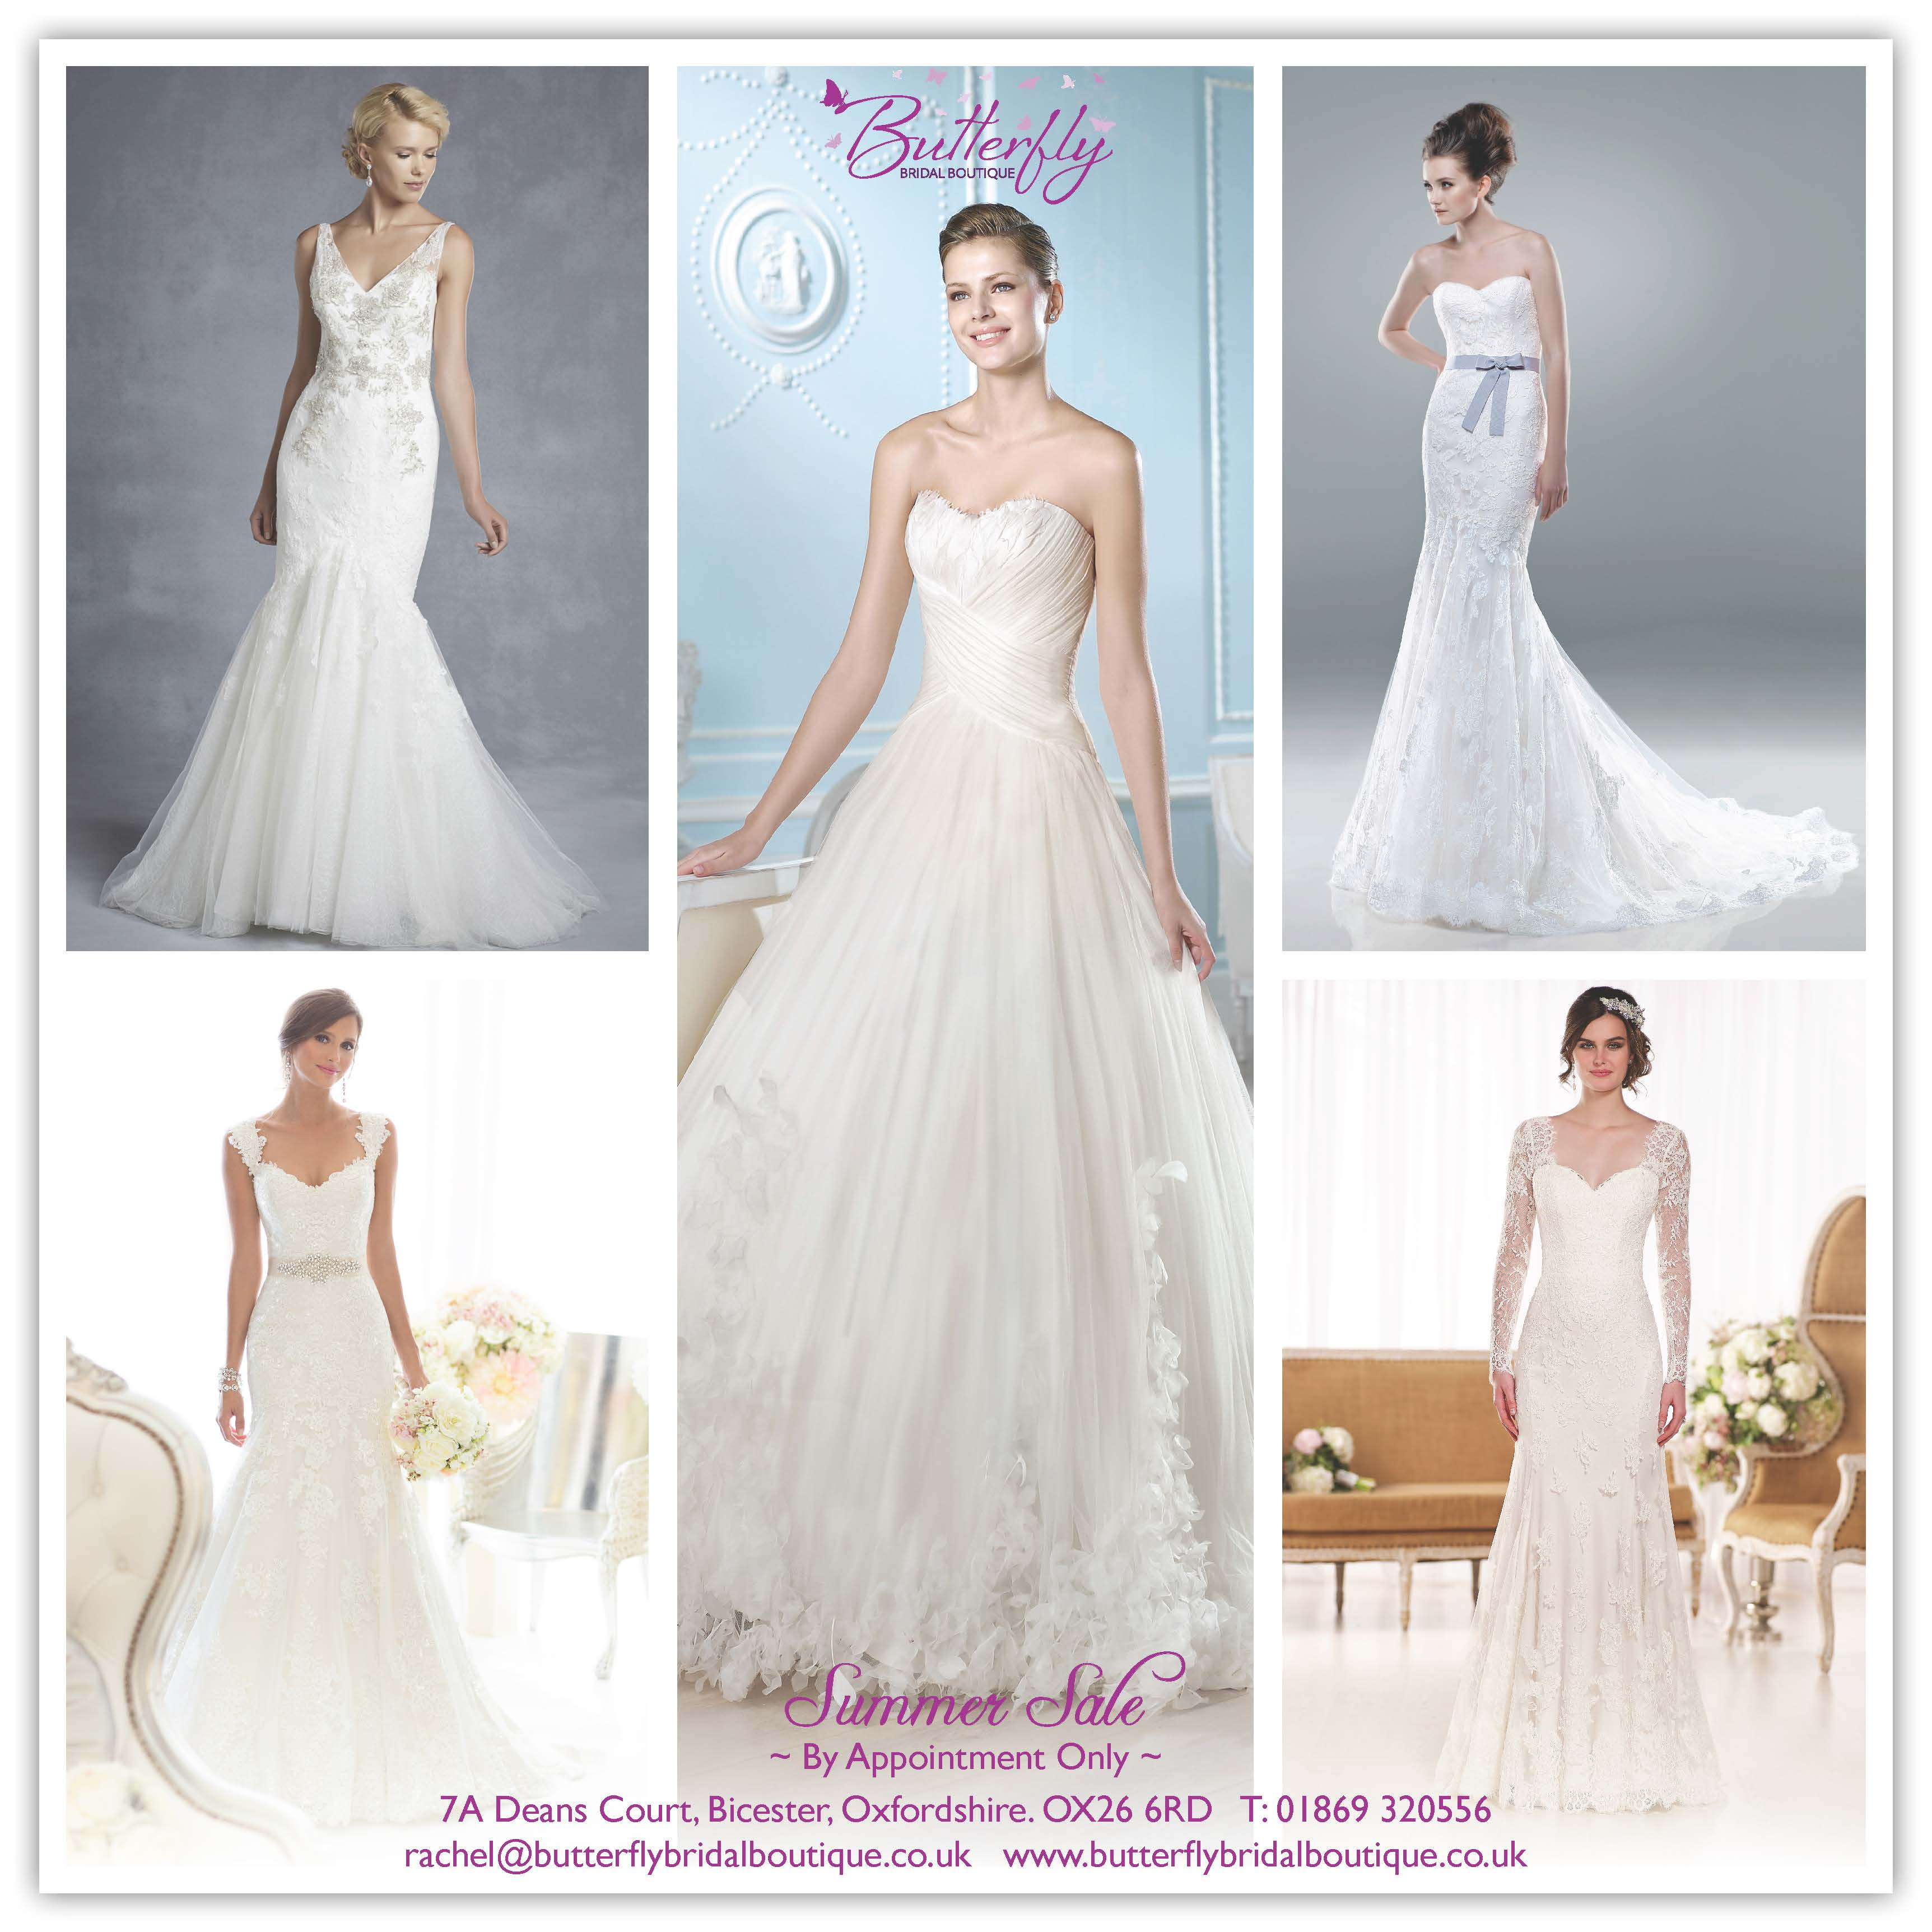 Summer Wedding Dress Sale - 01st-09th August - Butterfly Bridal Boutique